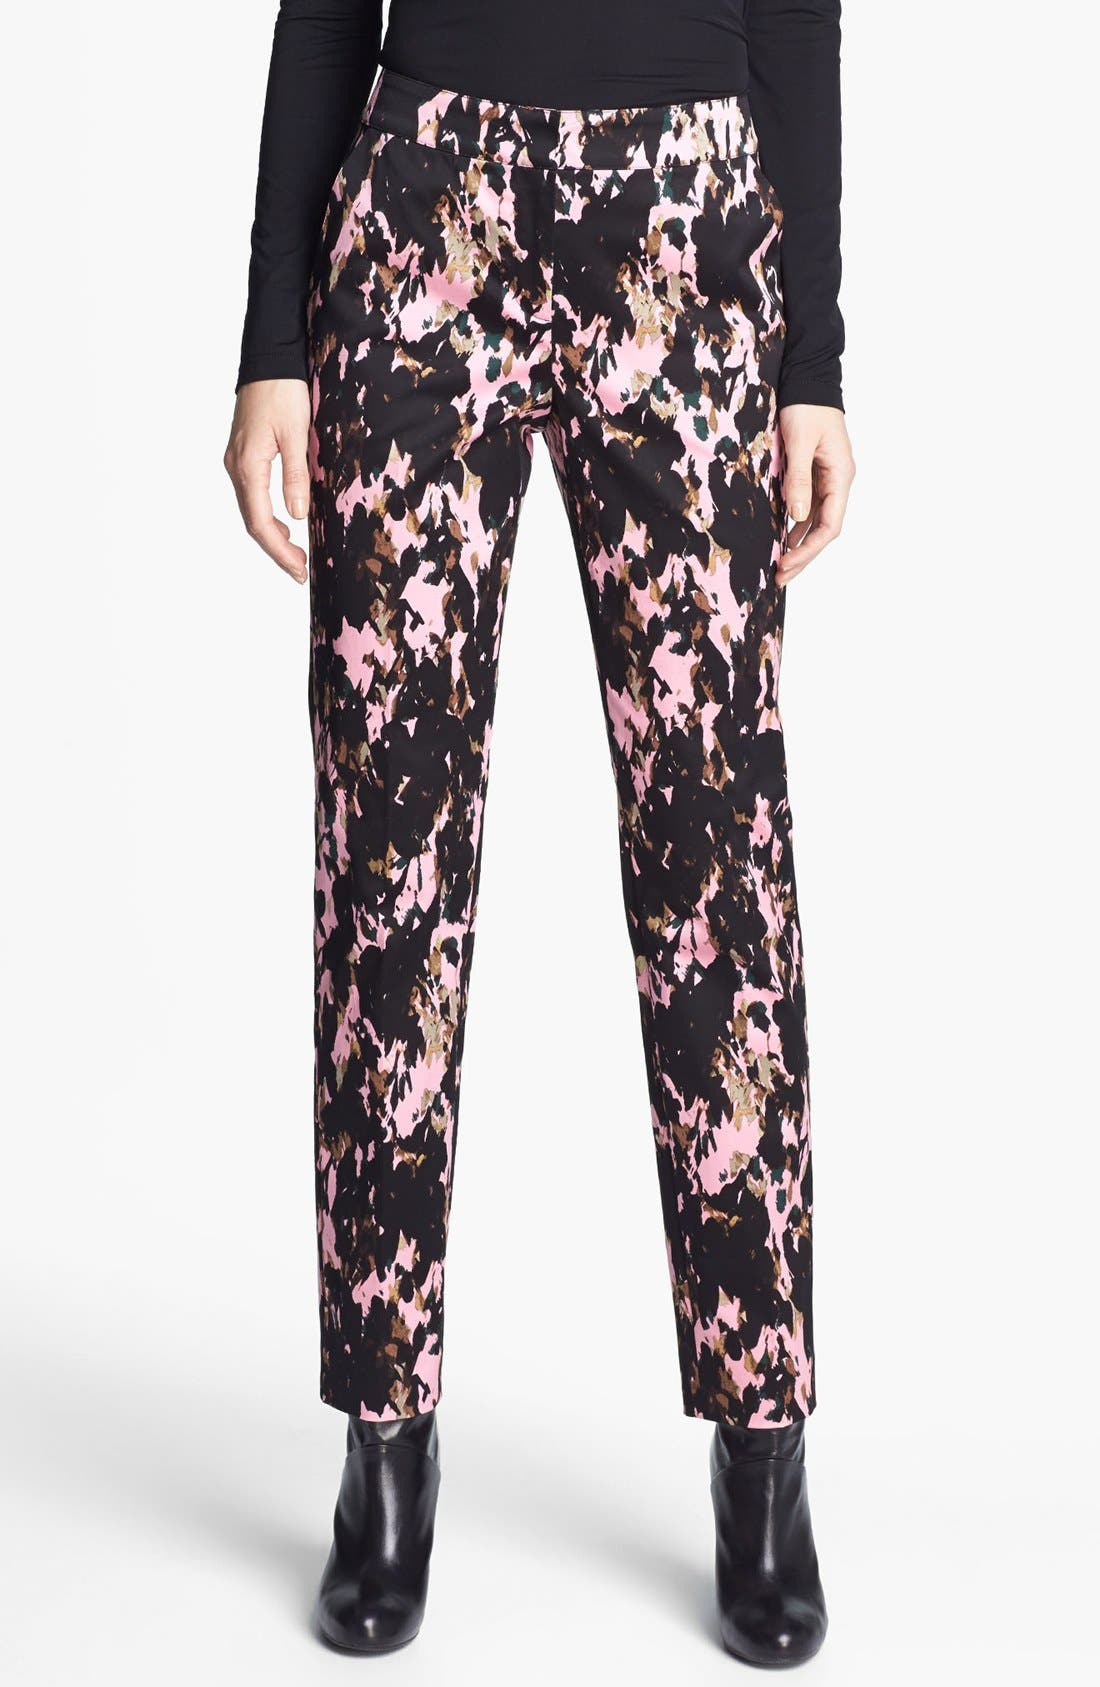 Alternate Image 1 Selected - St. John Collection 'Emma Longe' Abstract Print Stretch Sateen Pants